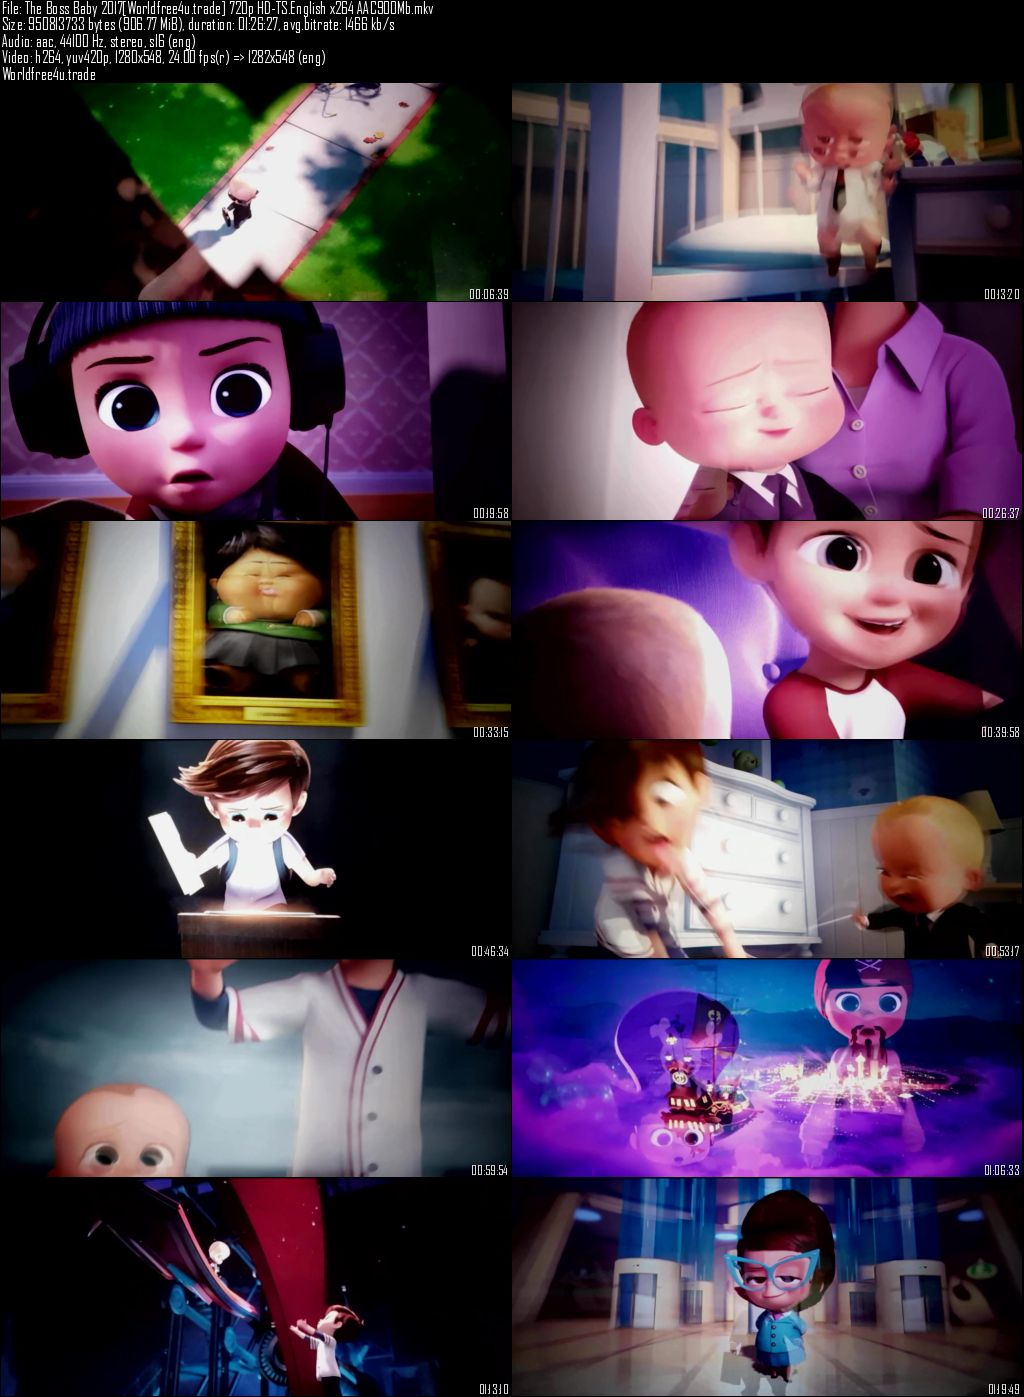 Screen Shots The Boss Baby 2017 Full Movie Download English HDCam